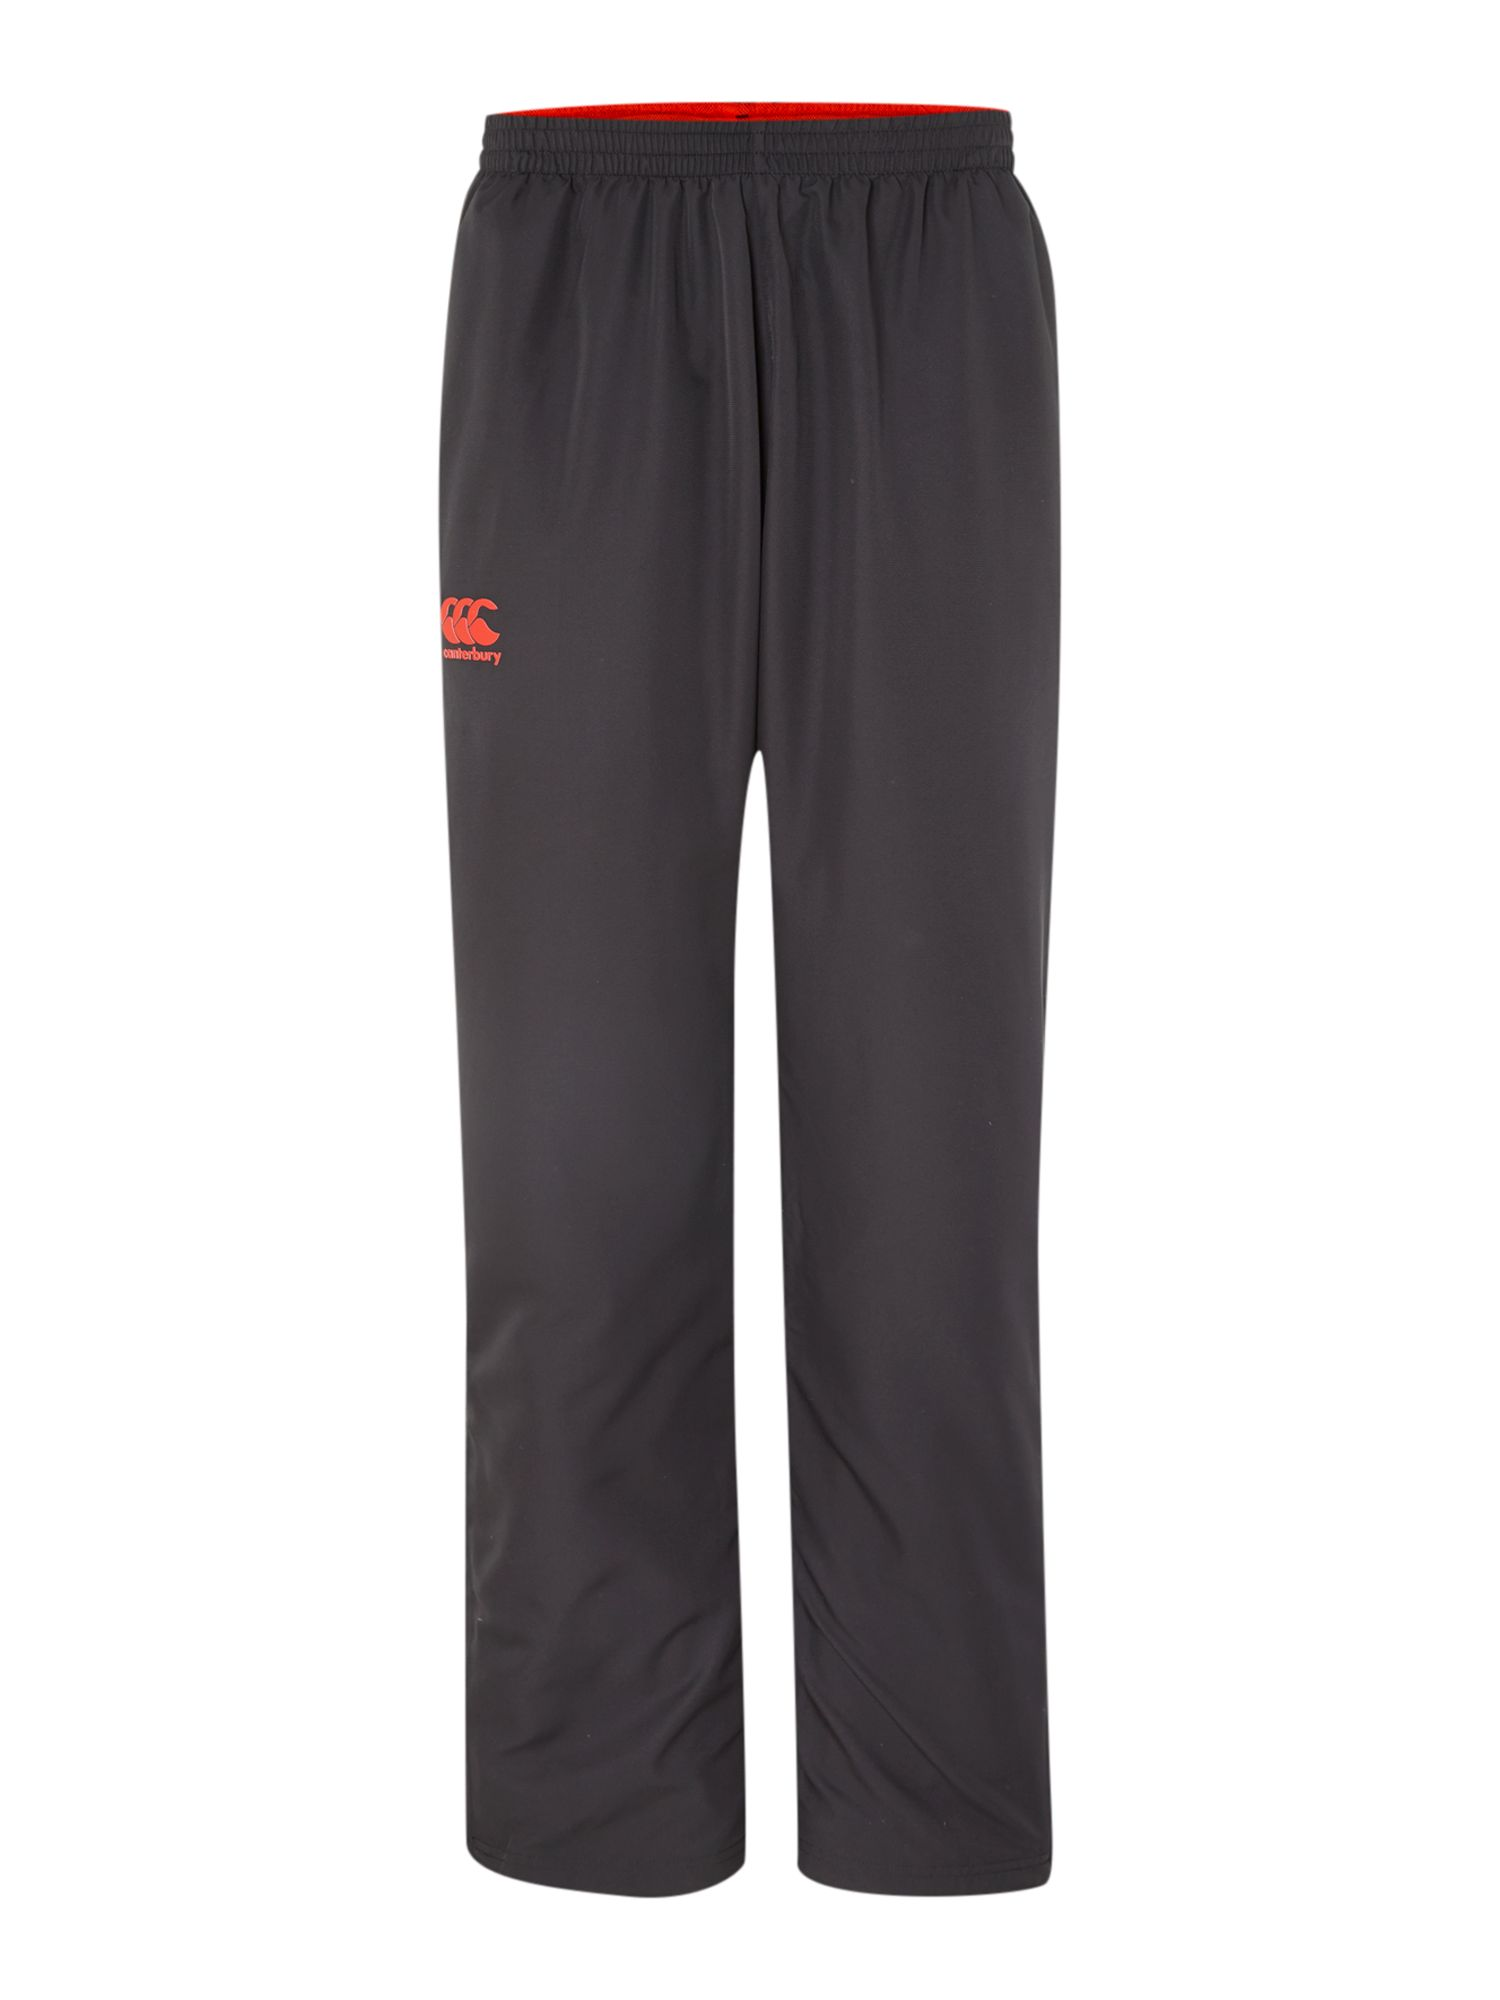 Mercury tracksuit bottoms